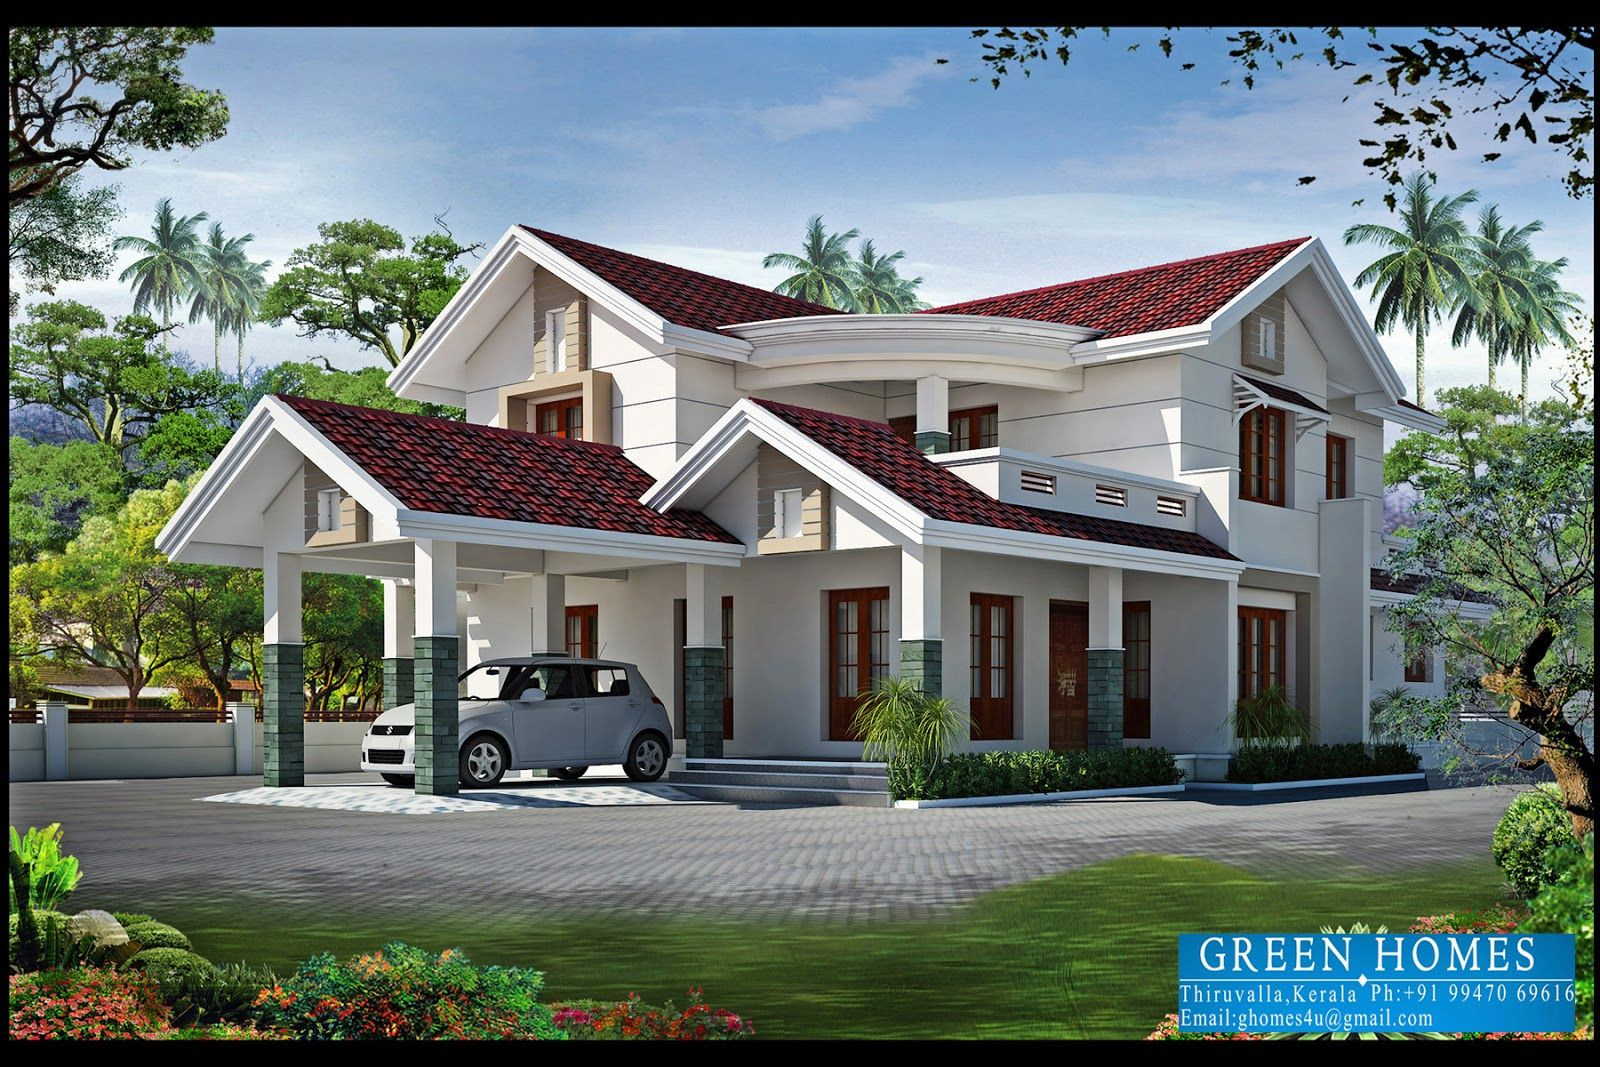 Kerla Home Design Architects In Kerala Architects In